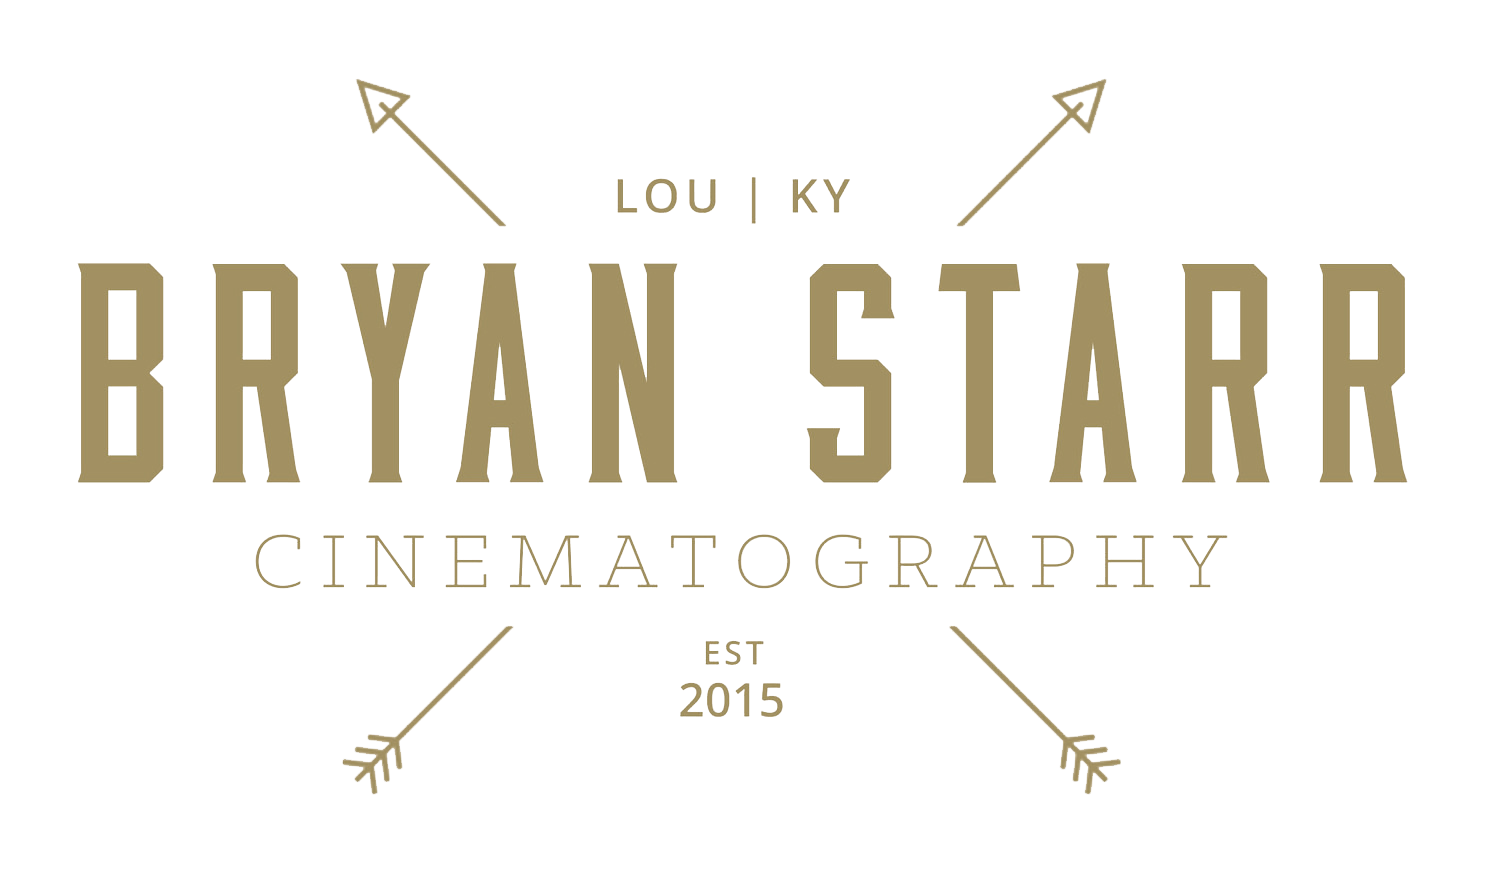 Bryan Starr Cinematography